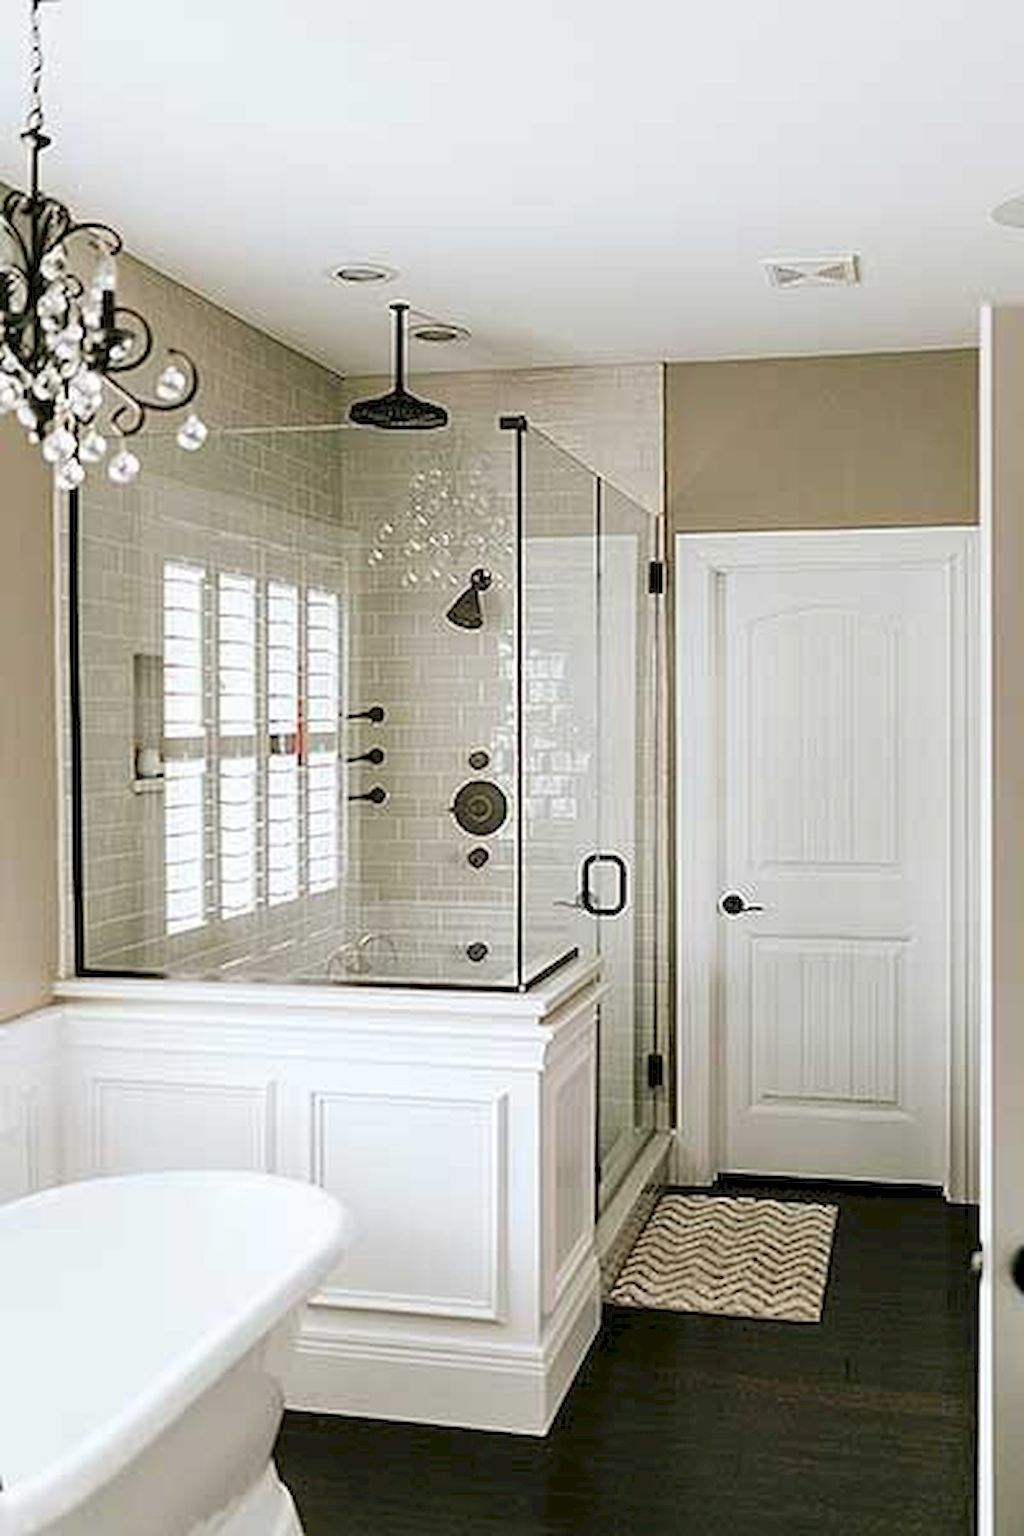 traditional bathrooms designs bathtub cool 70 insanely master bathroom remodel httpshomeondecorcom remodel pinterest